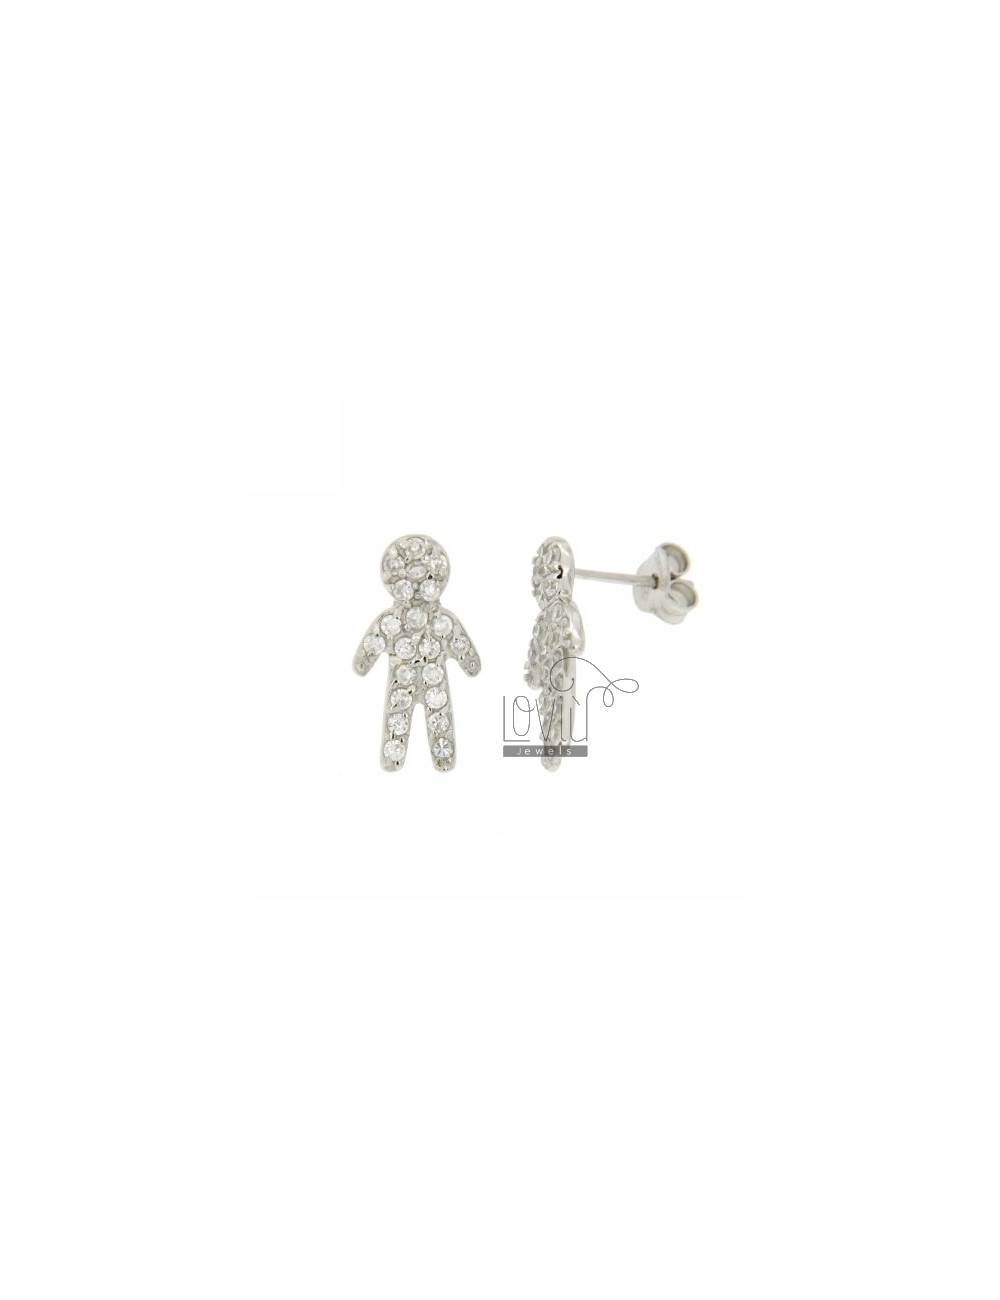 A BOY WITH LOBO EARRINGS PAVE &39OF ZIRCONIA IN RHODIUM AG TIT 925